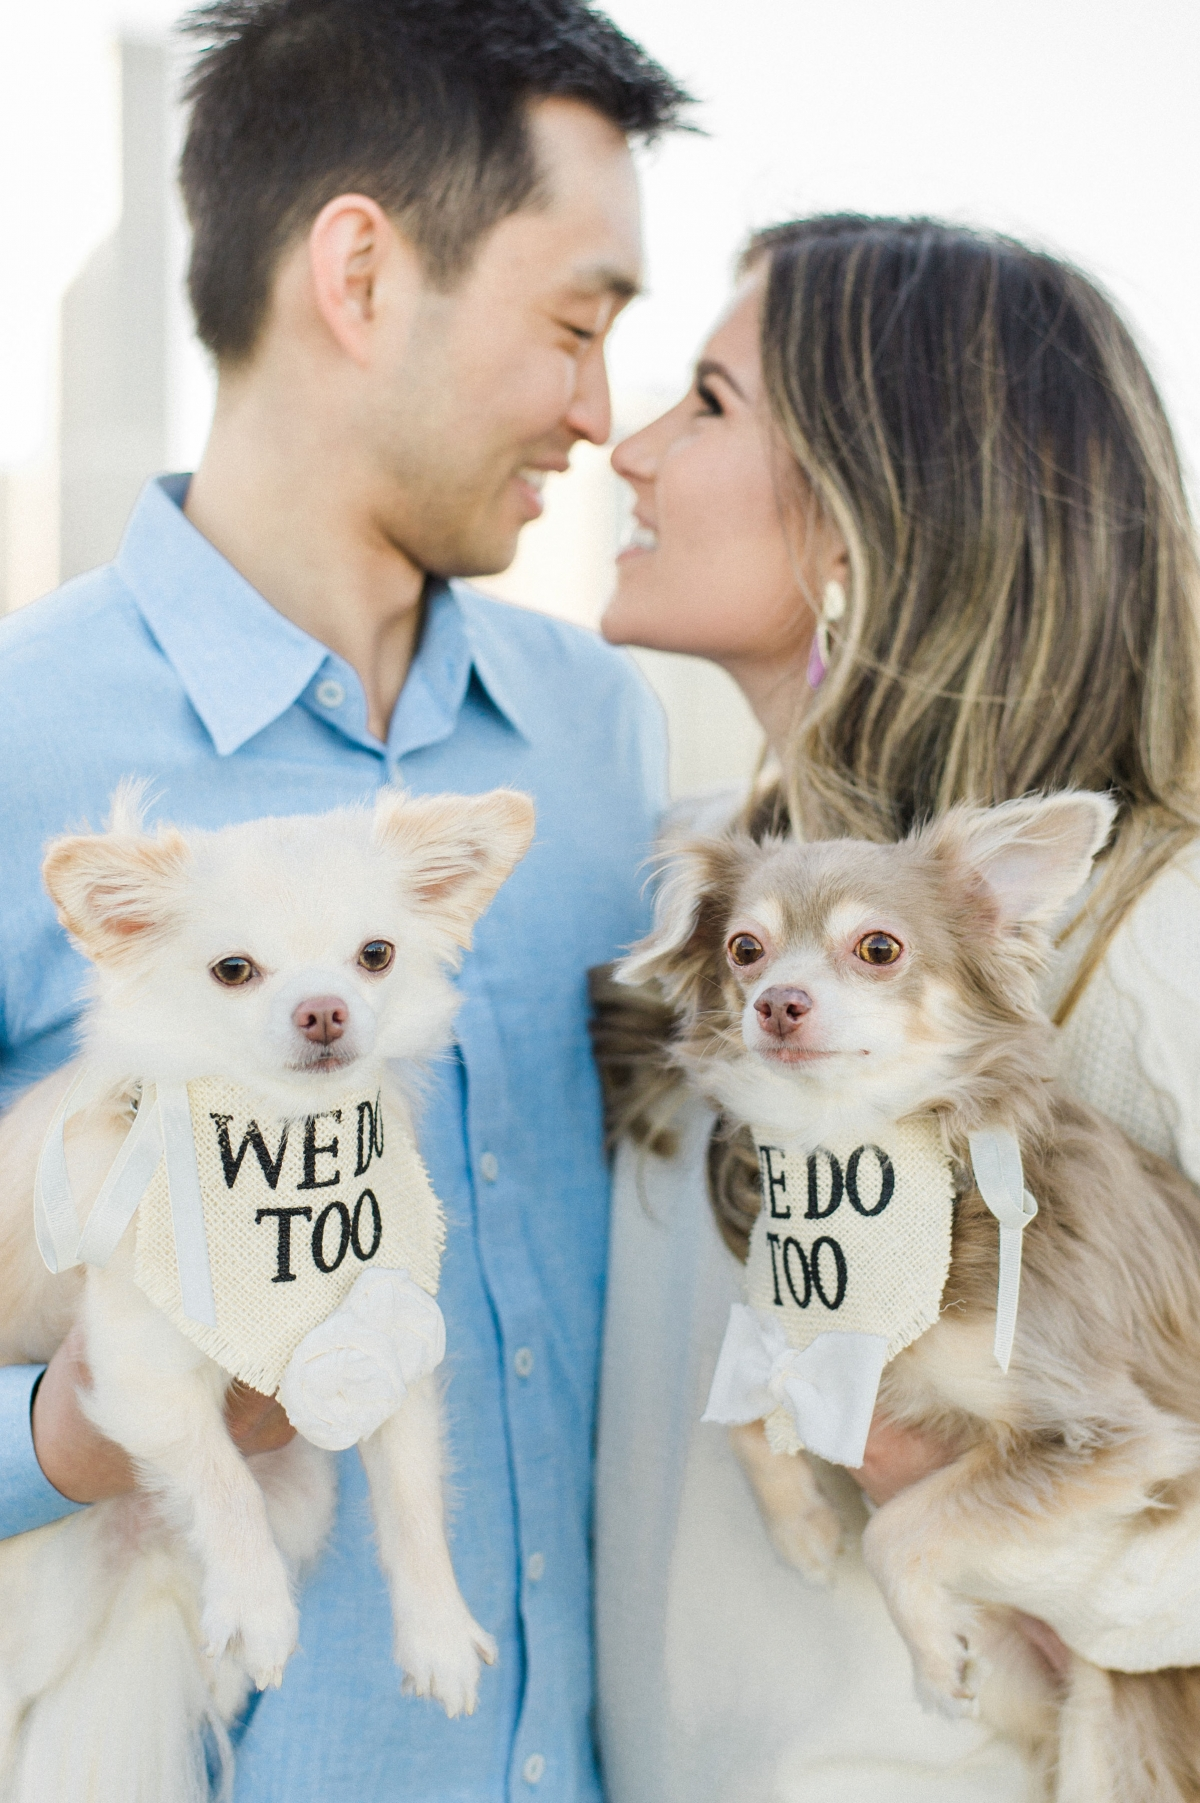 Olive Park Engagement Session with Puppies Nicole Jansma (3)